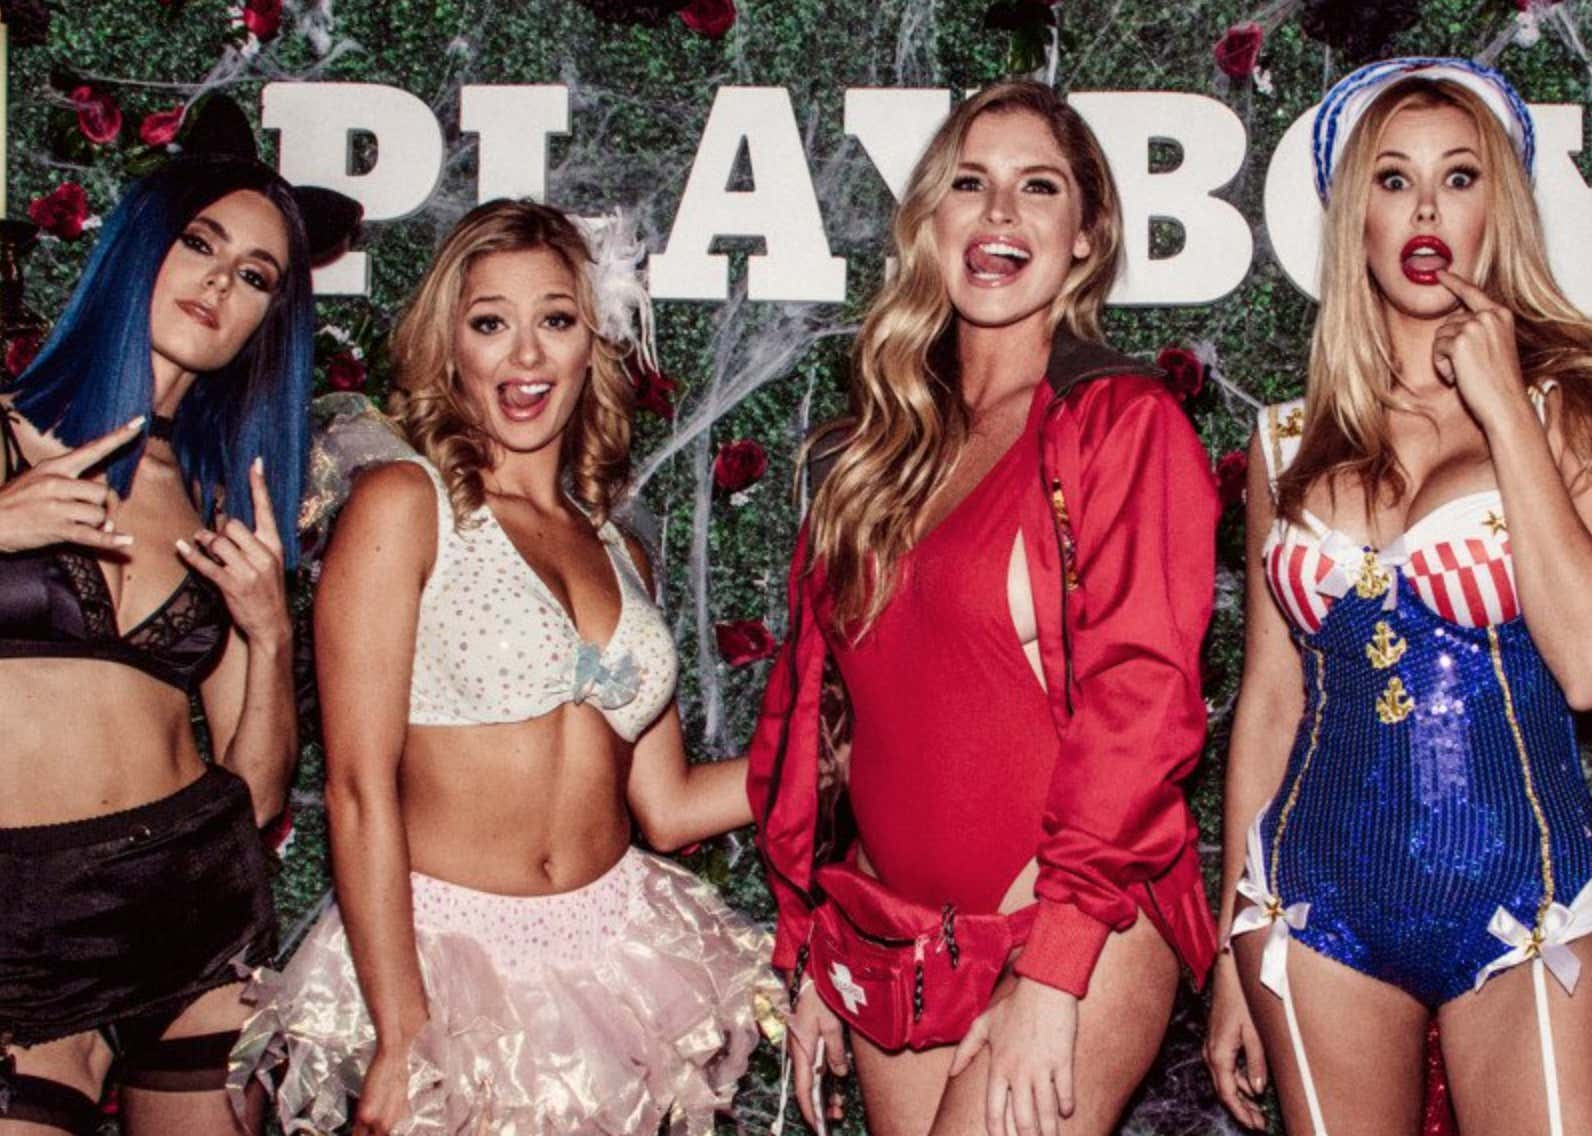 ranking the sexiest halloween costumes - barstool sports